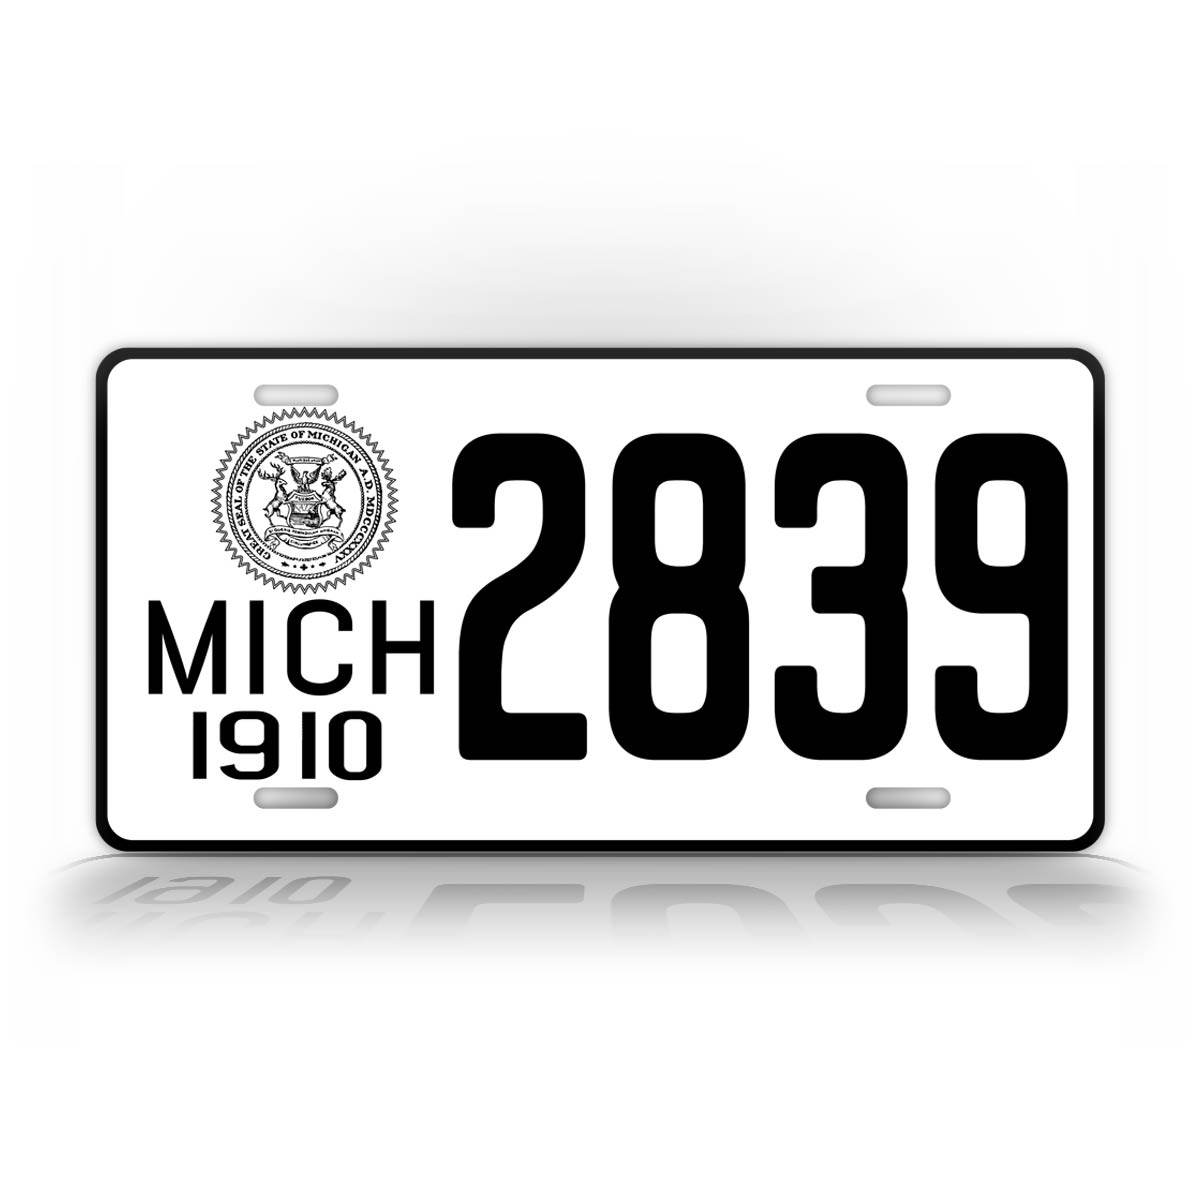 Any Text Personalized 1910 Michigan License Plate